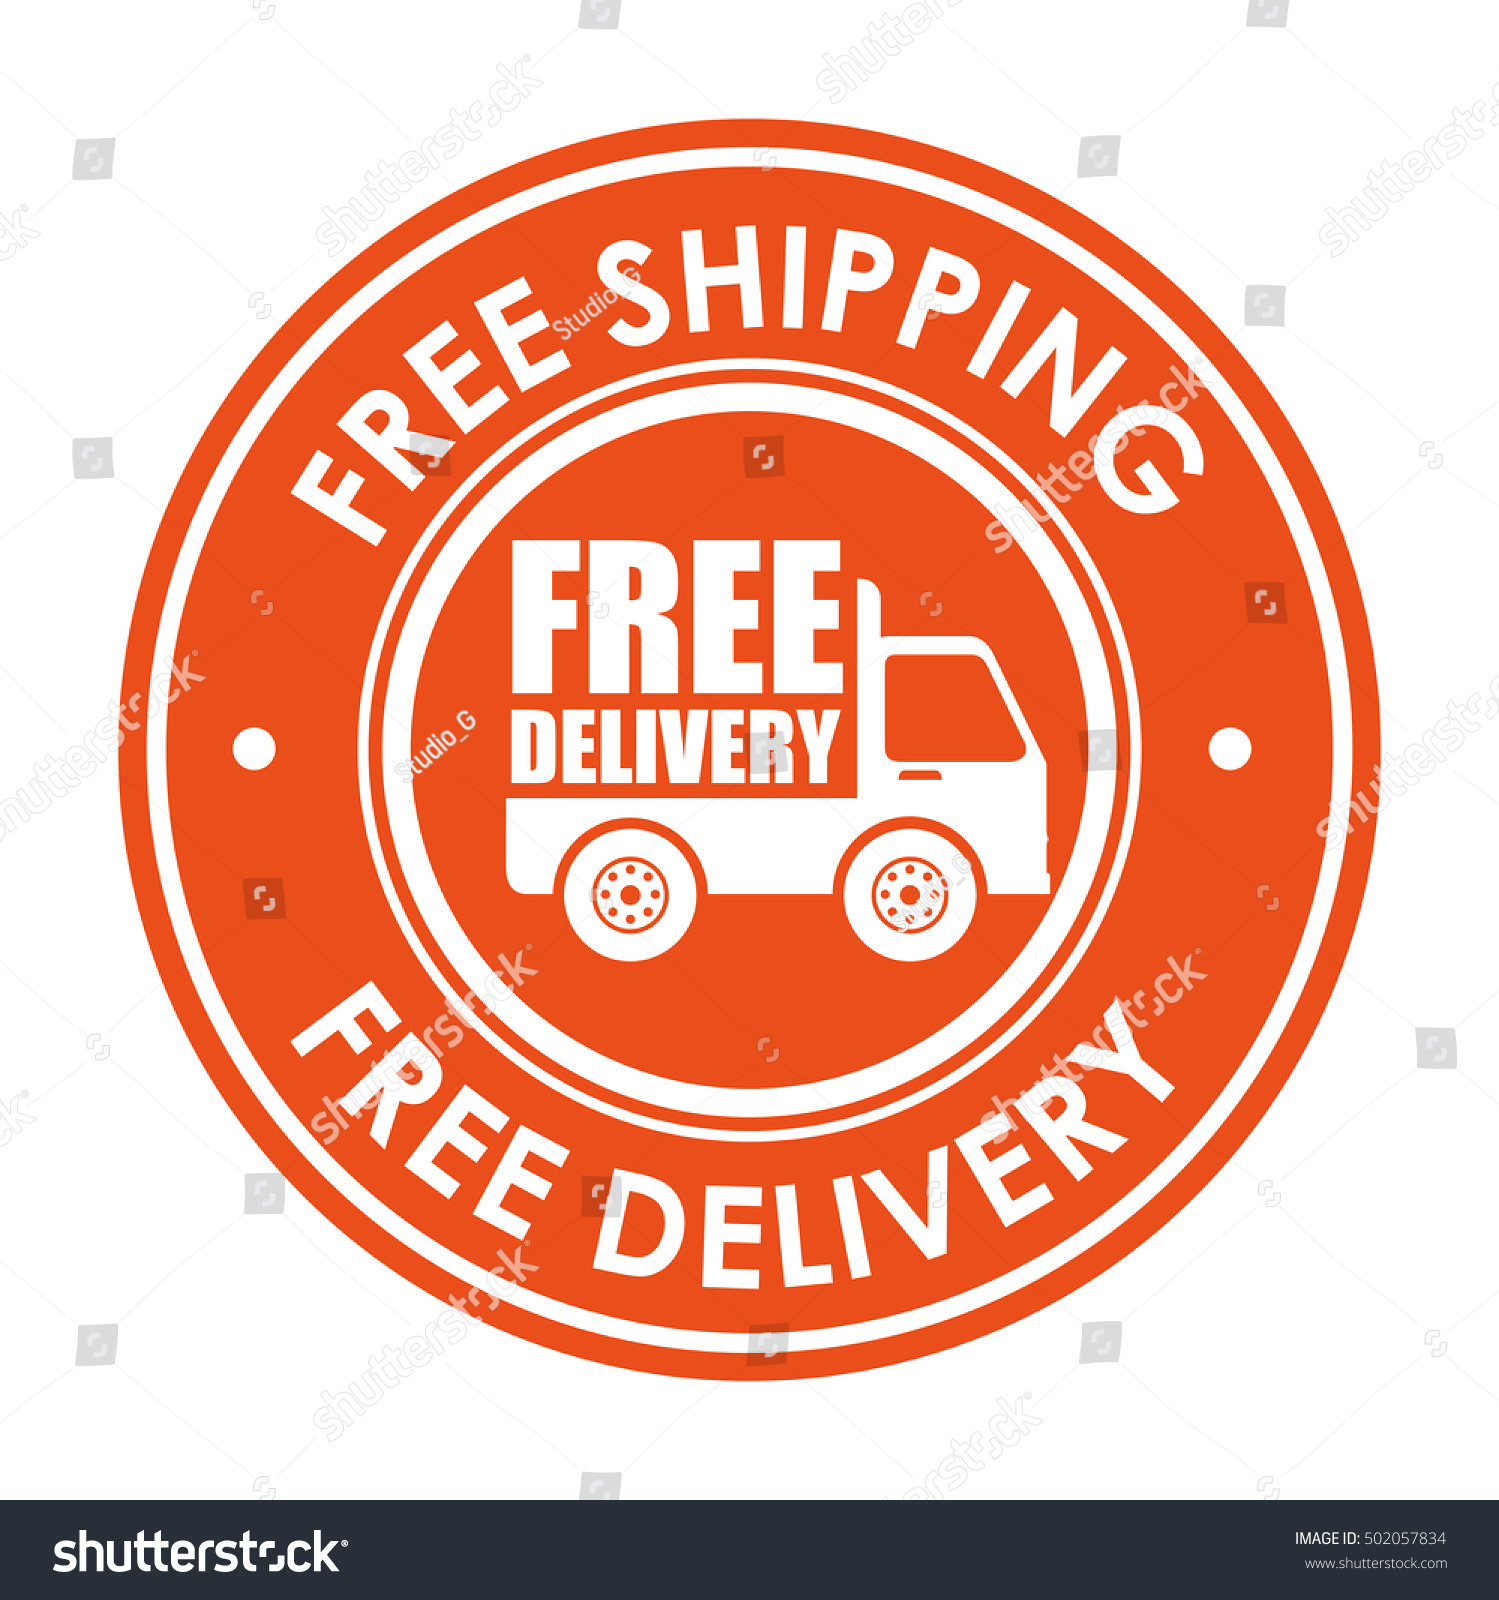 Shipping Delivery: Sign Free Shipping Delivery Truck Icon Stock Vector